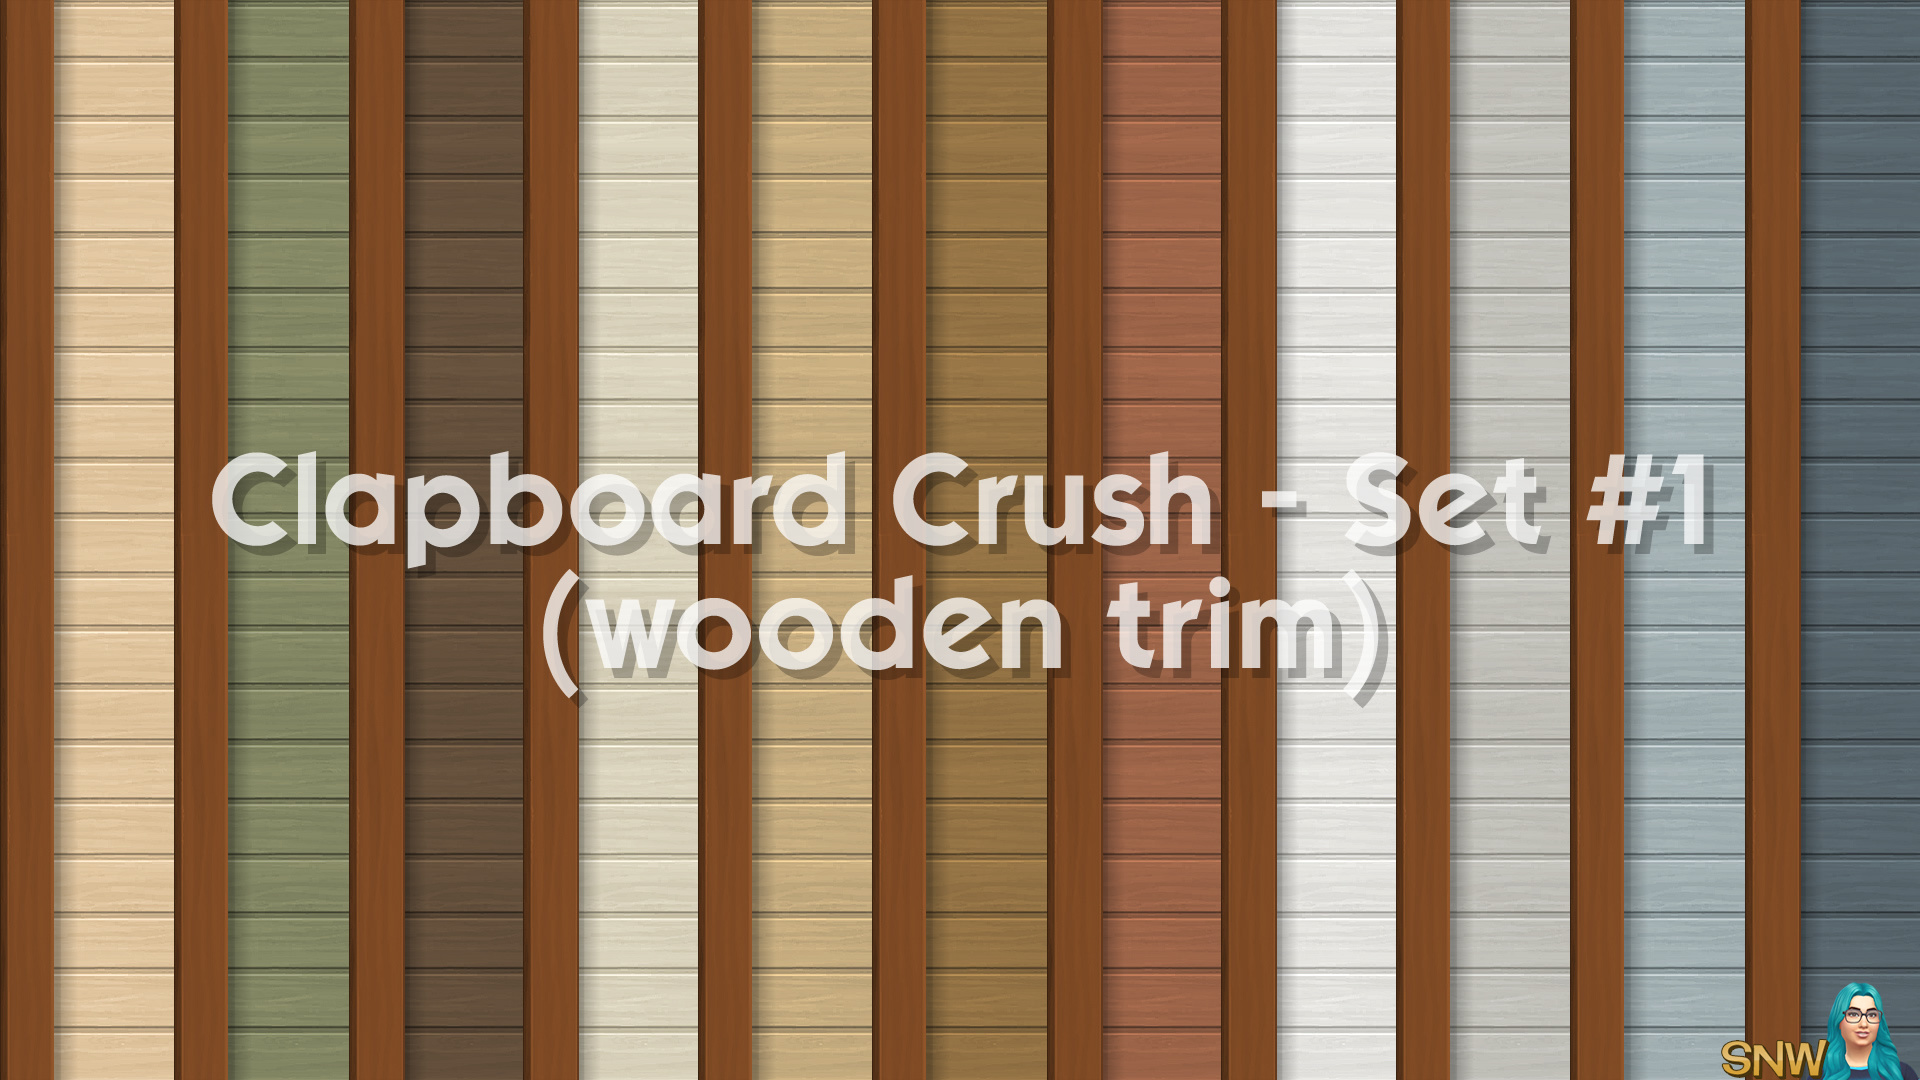 Clapboard Crush Siding Walls Set #1 (with Wooden Corner Trim)